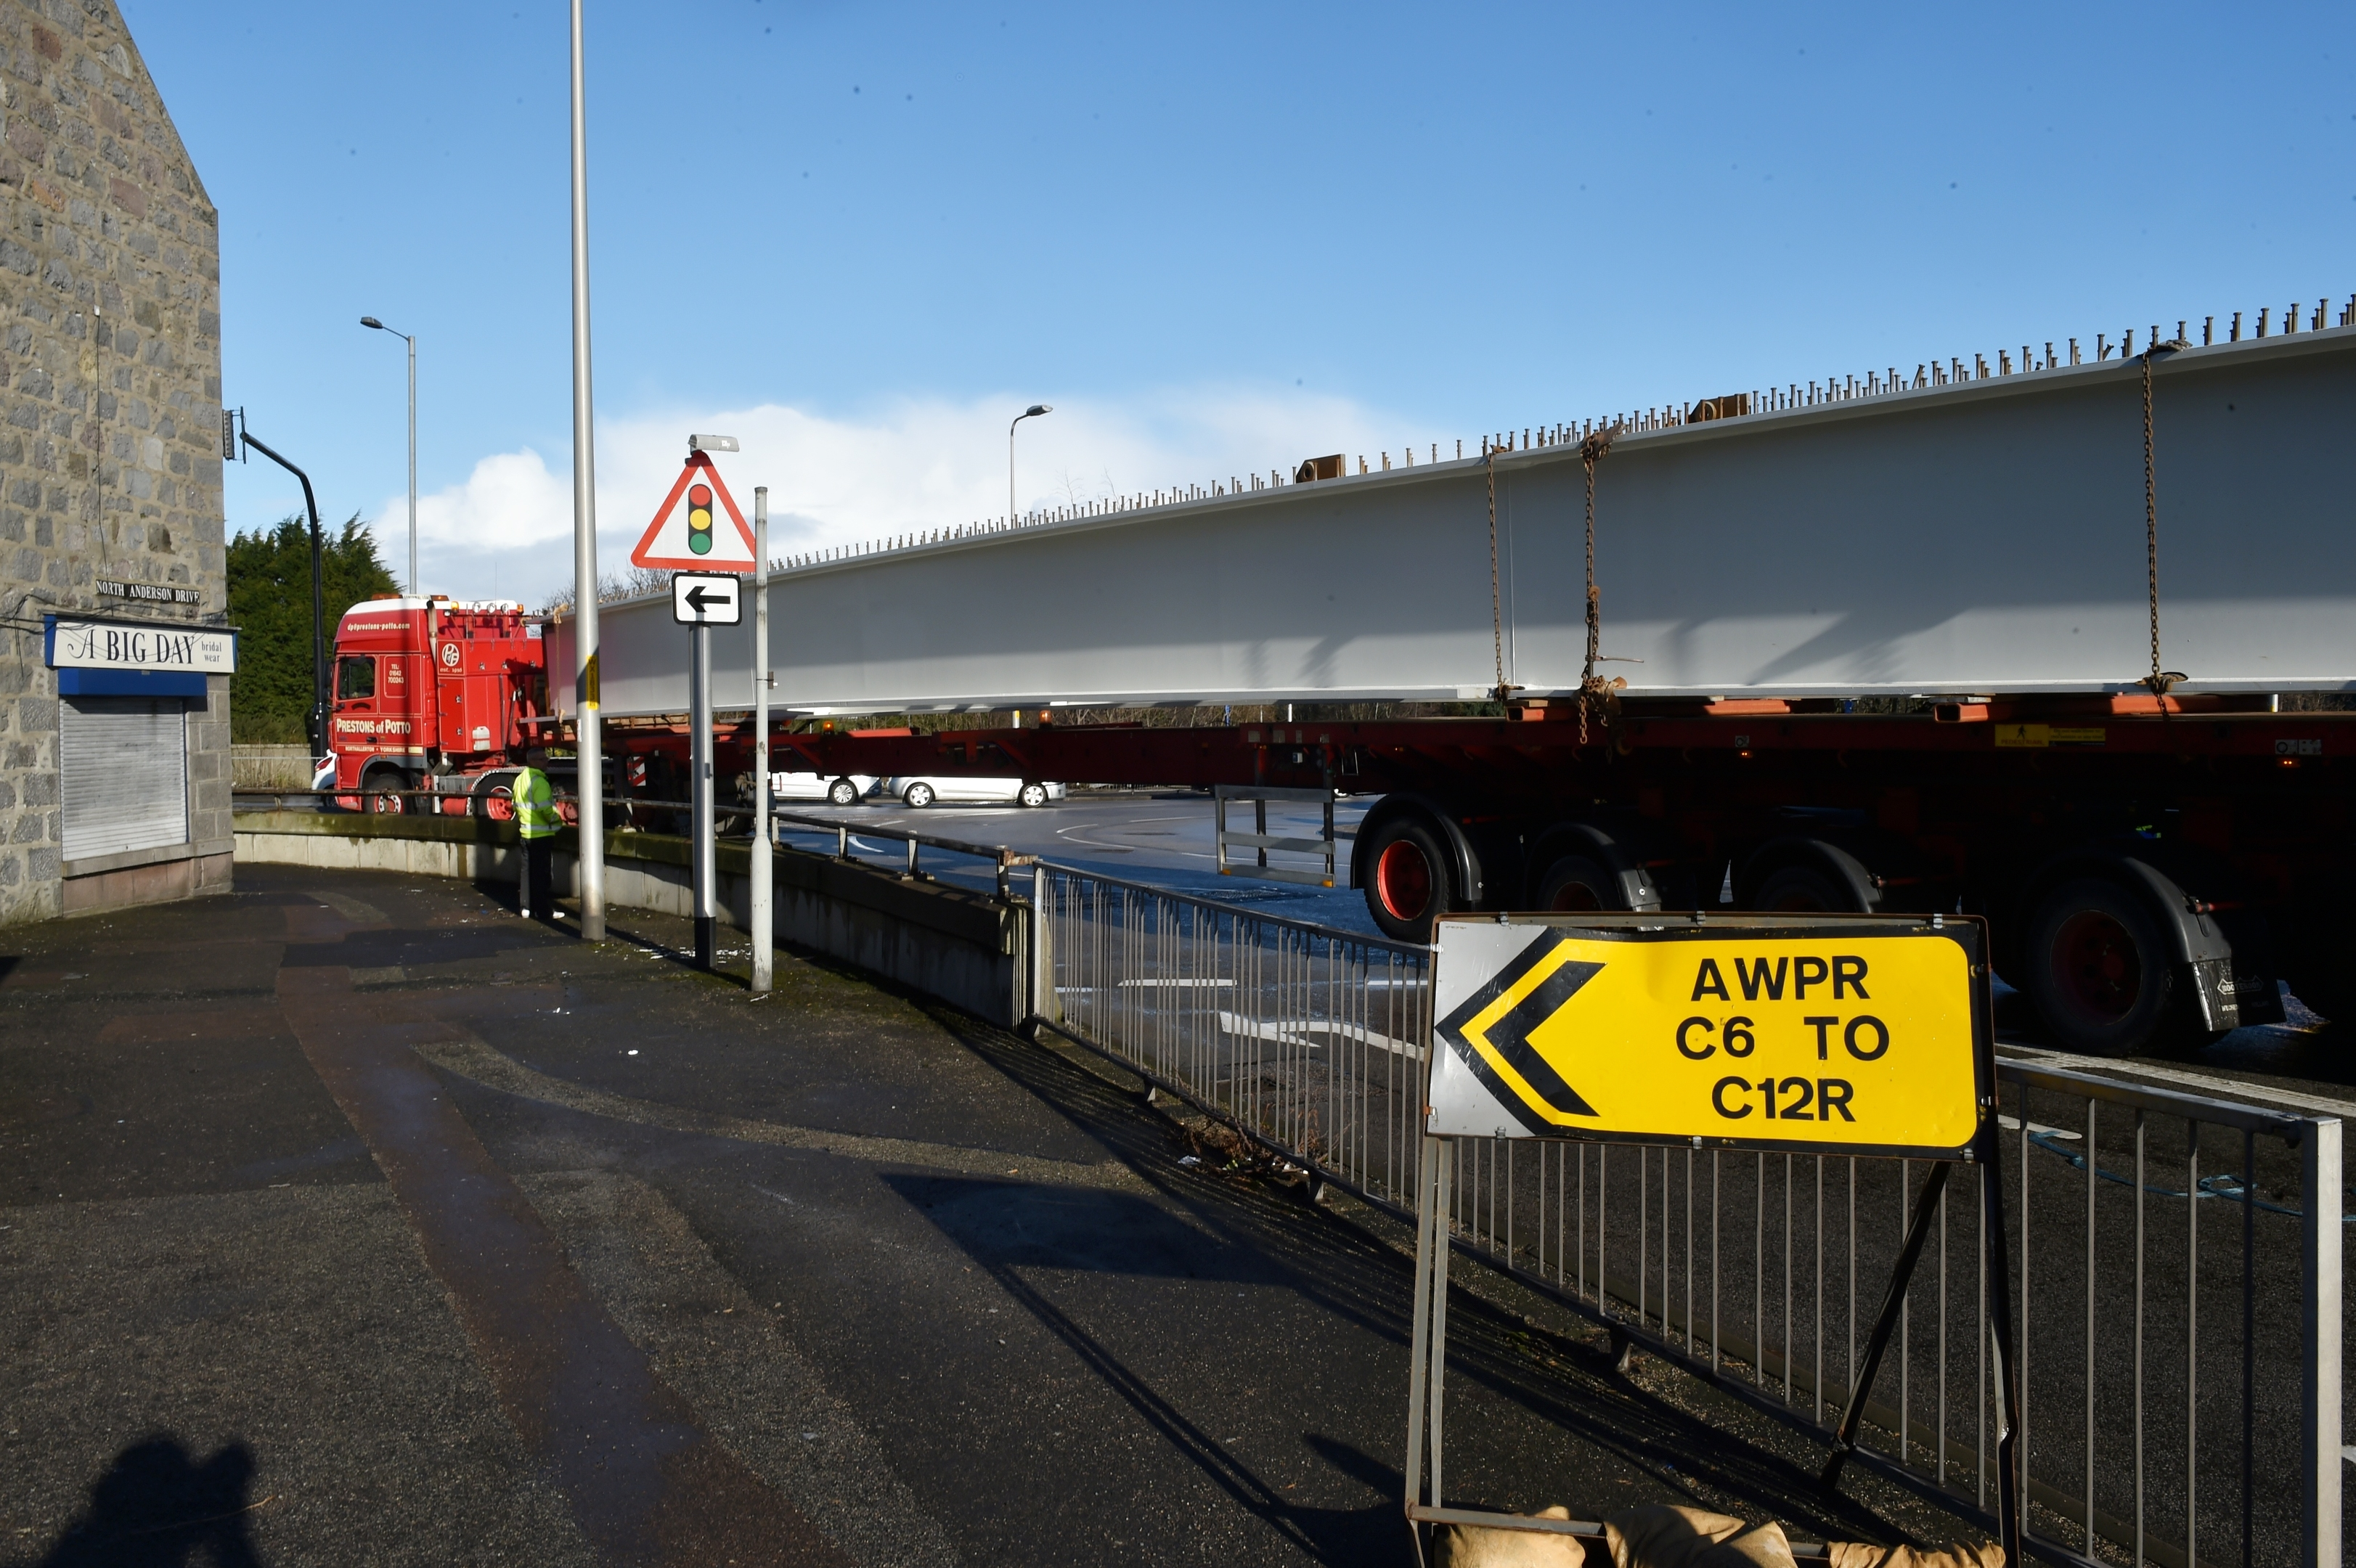 The AWPR lorries move through Aberdeen, transporting the large beams